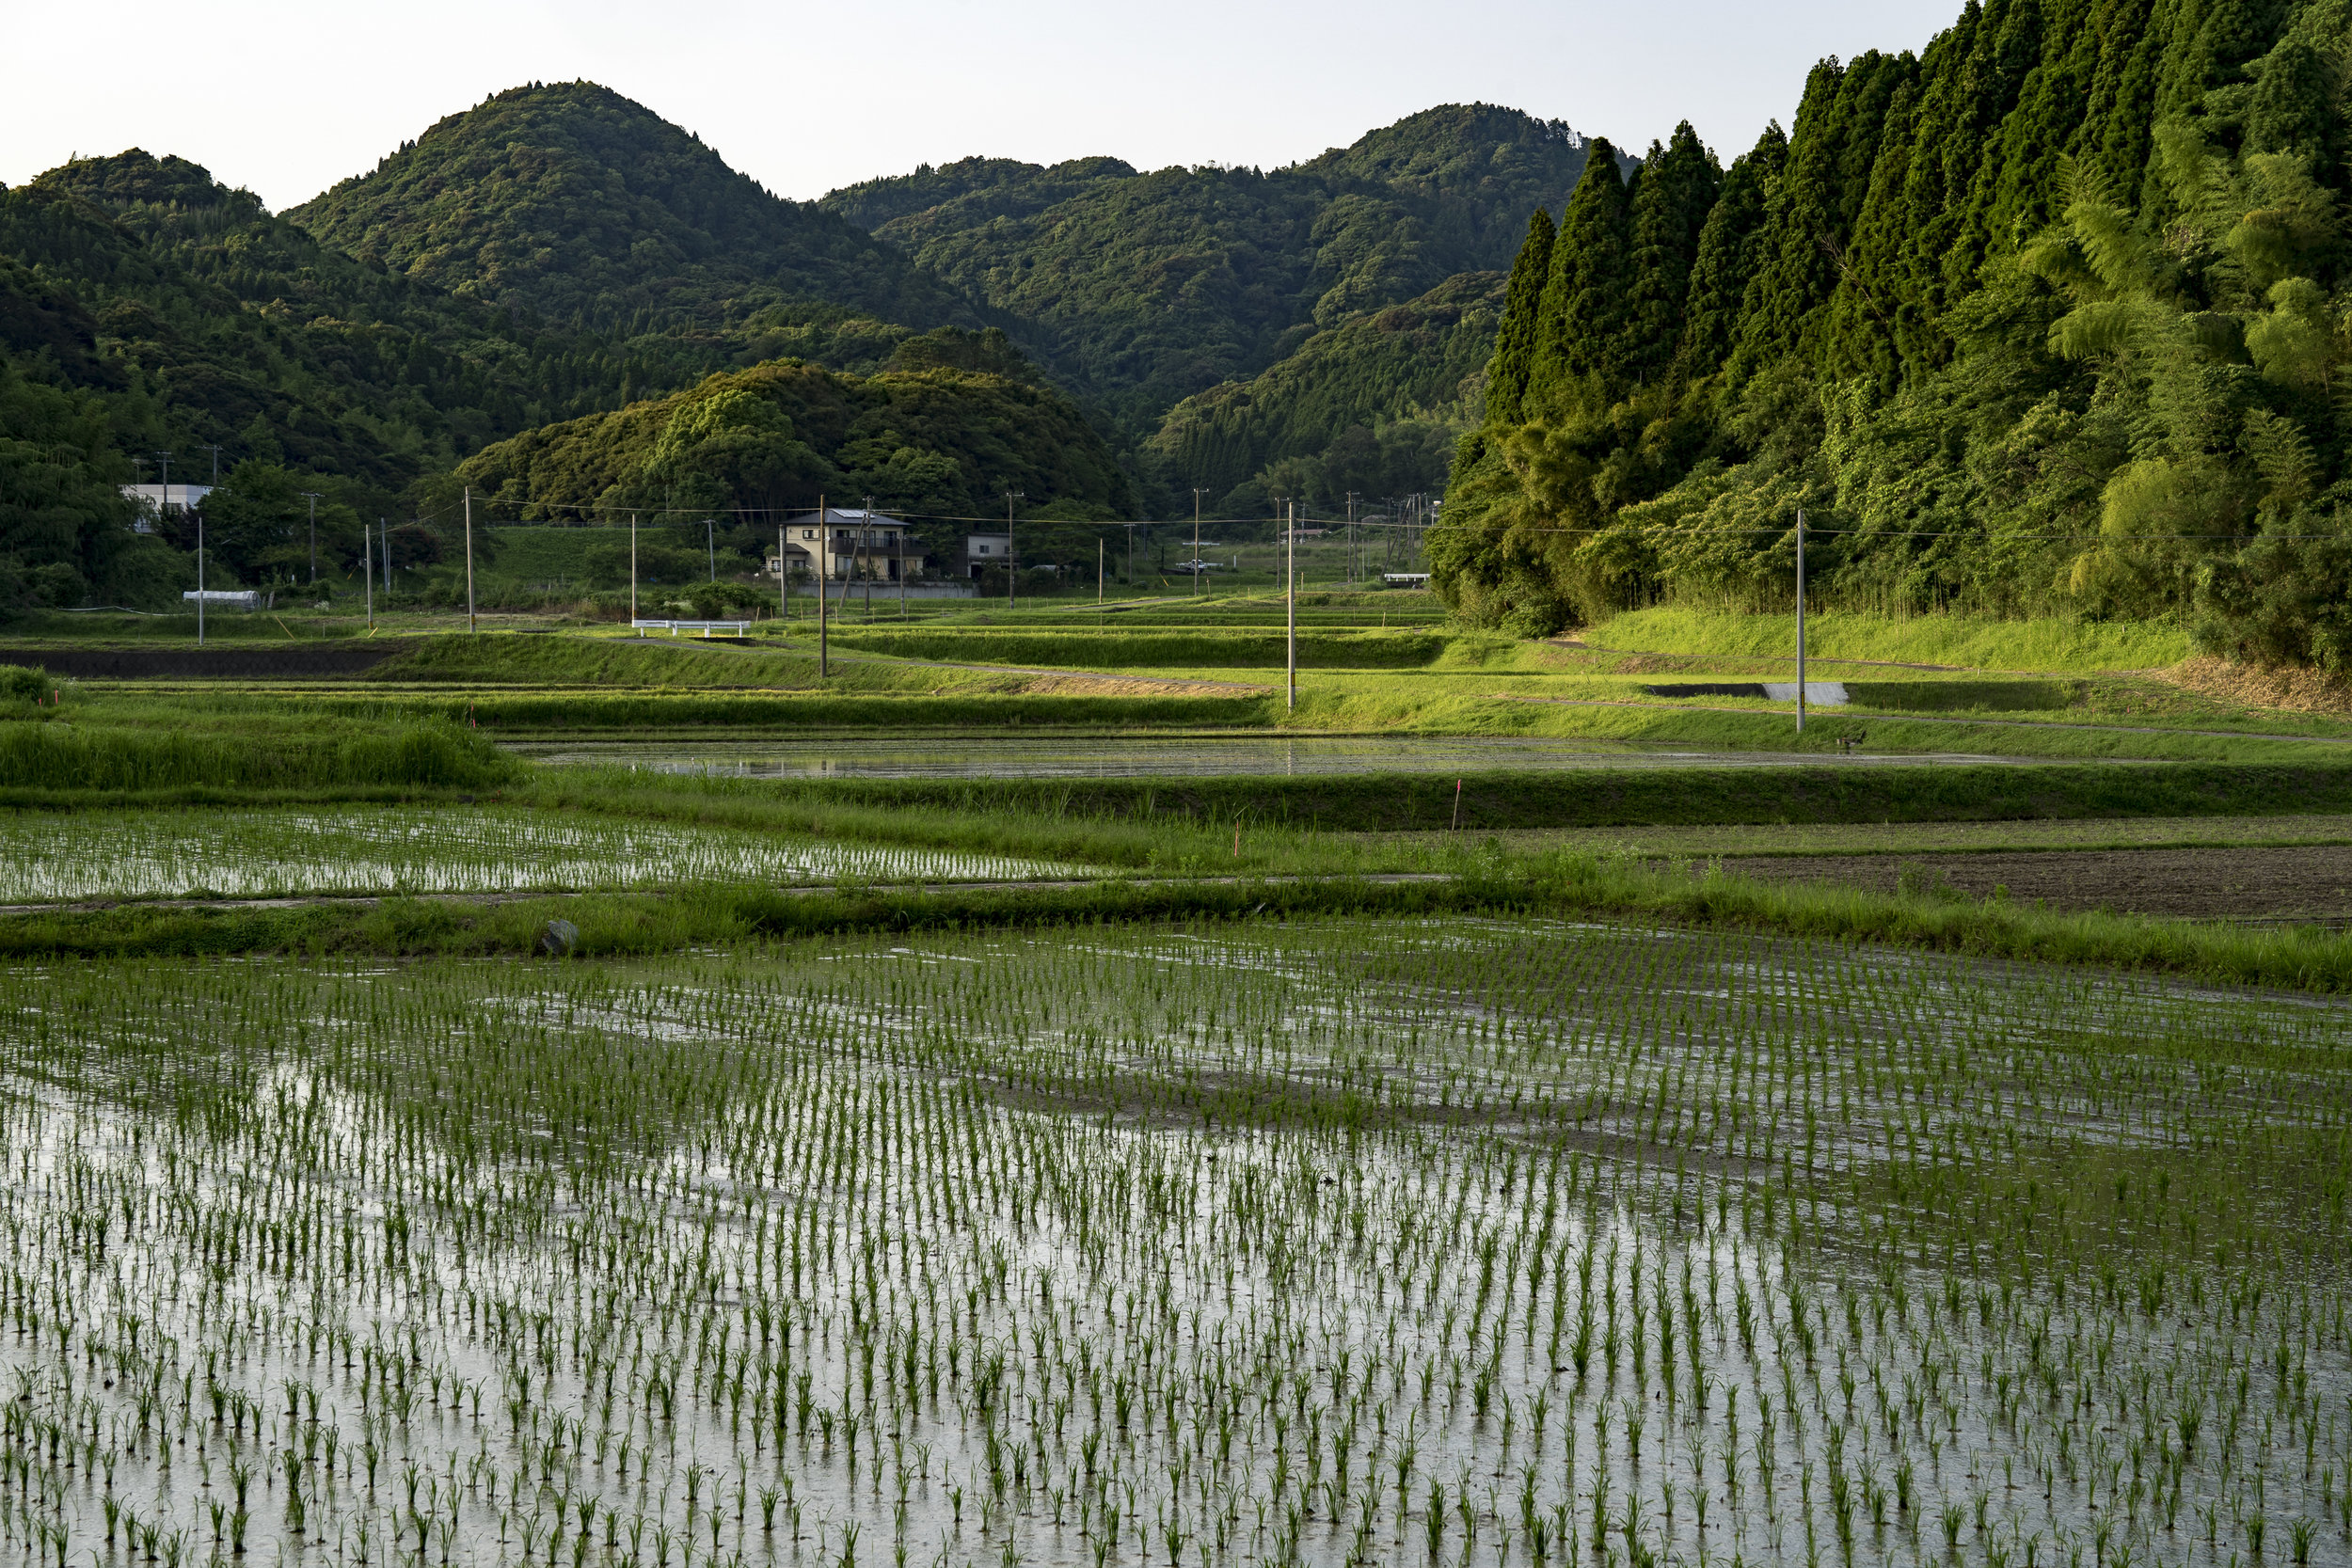 The rice fields are starting to be planted.